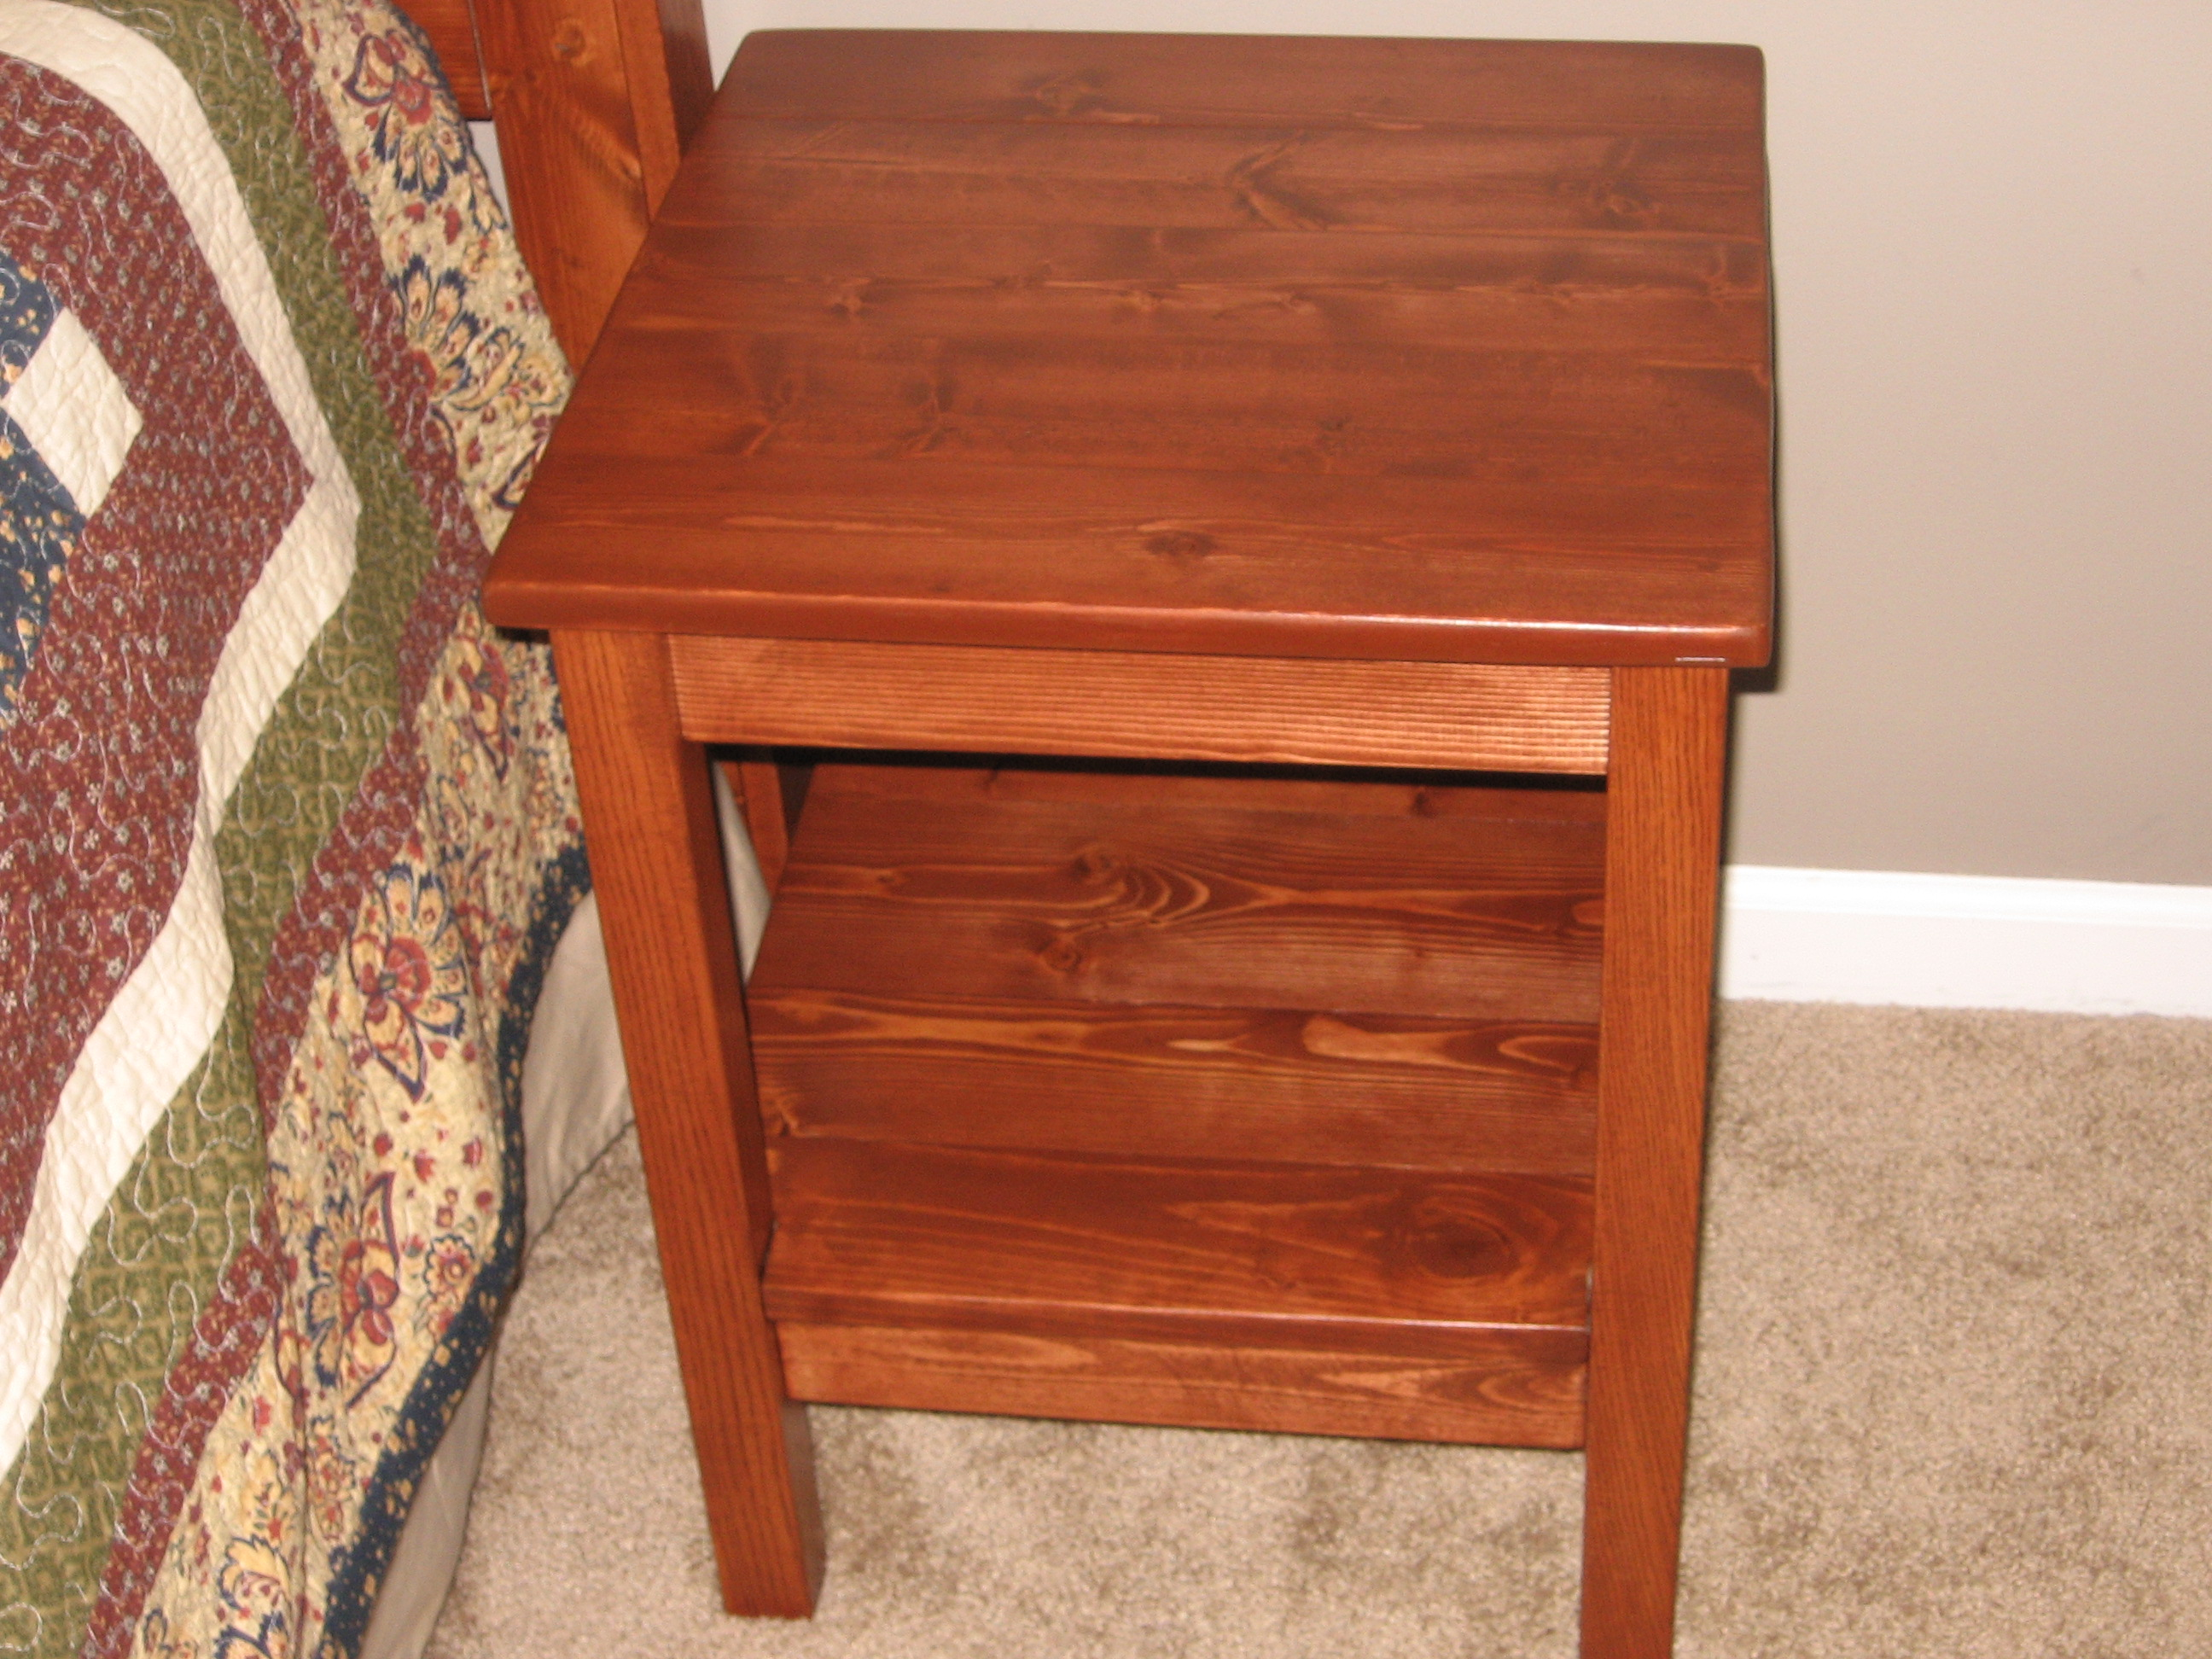 Plans to build simple bedside table plans pdf plans Simple bedside table designs